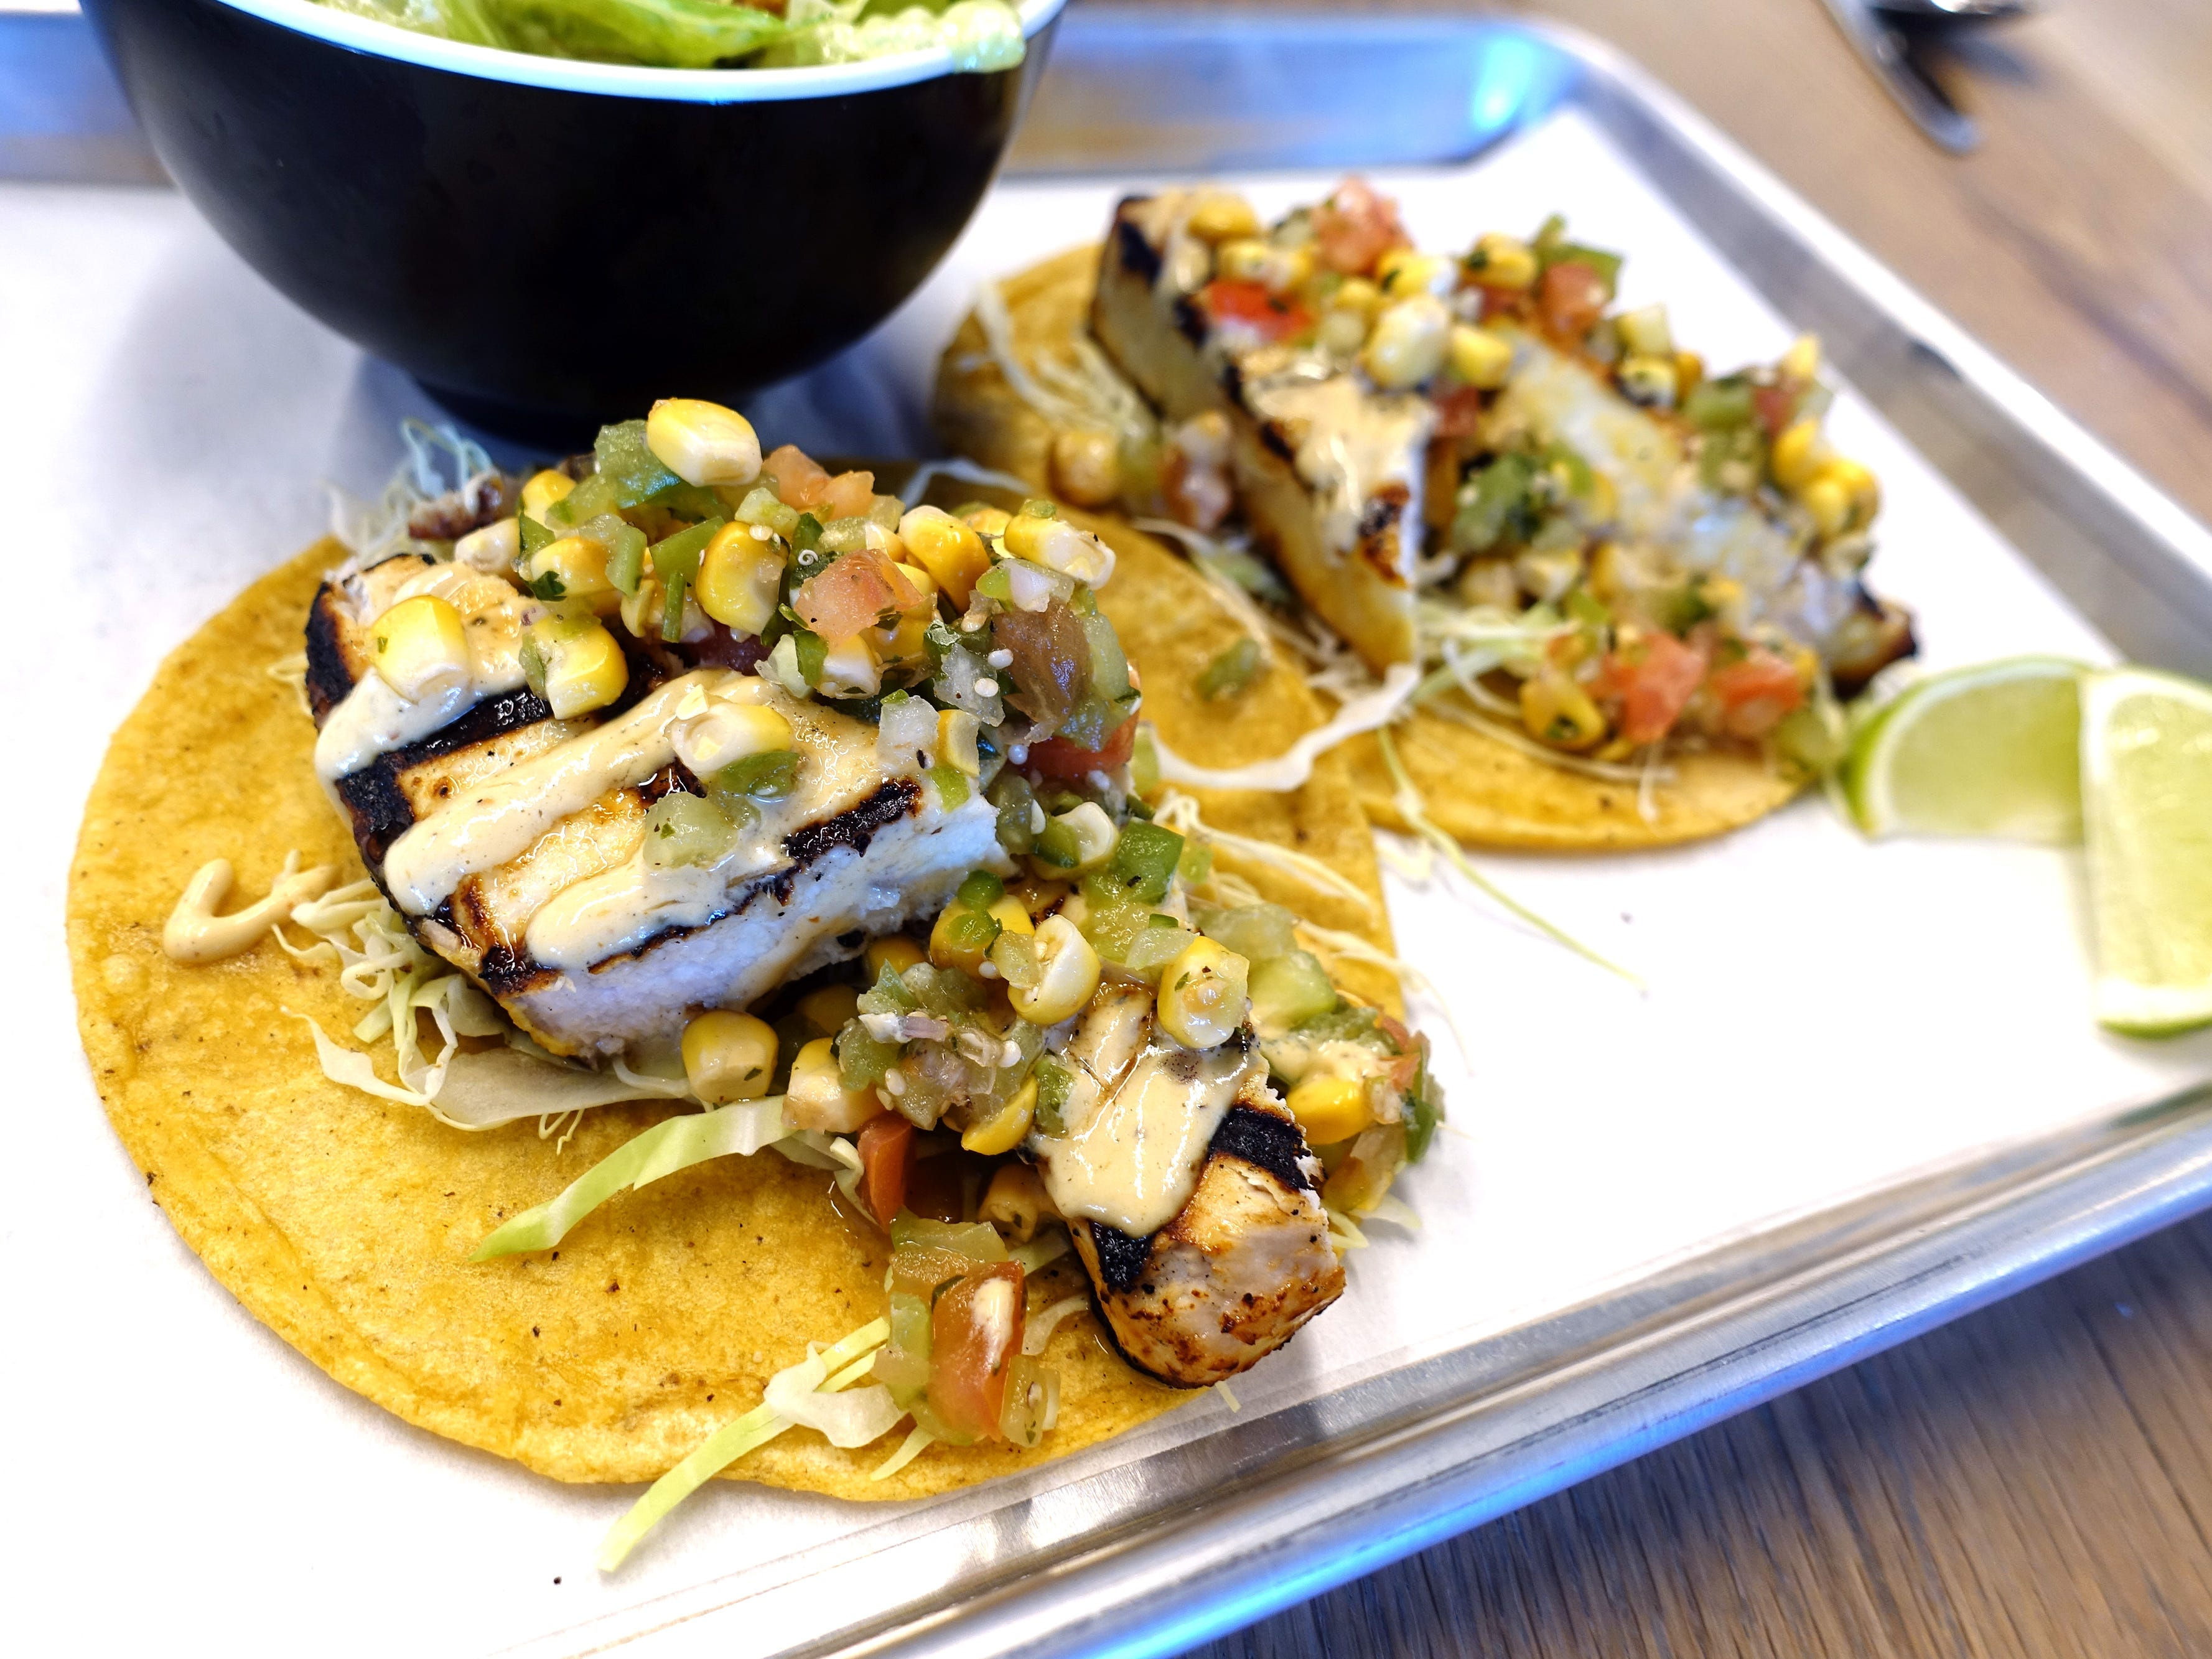 Swordfish tacos with mojo marinated grilled Chula swordfish, smoked corn, tomatillo pico, shredded cabbage and chile crema at Chula Seafood Uptown in Phoenix.